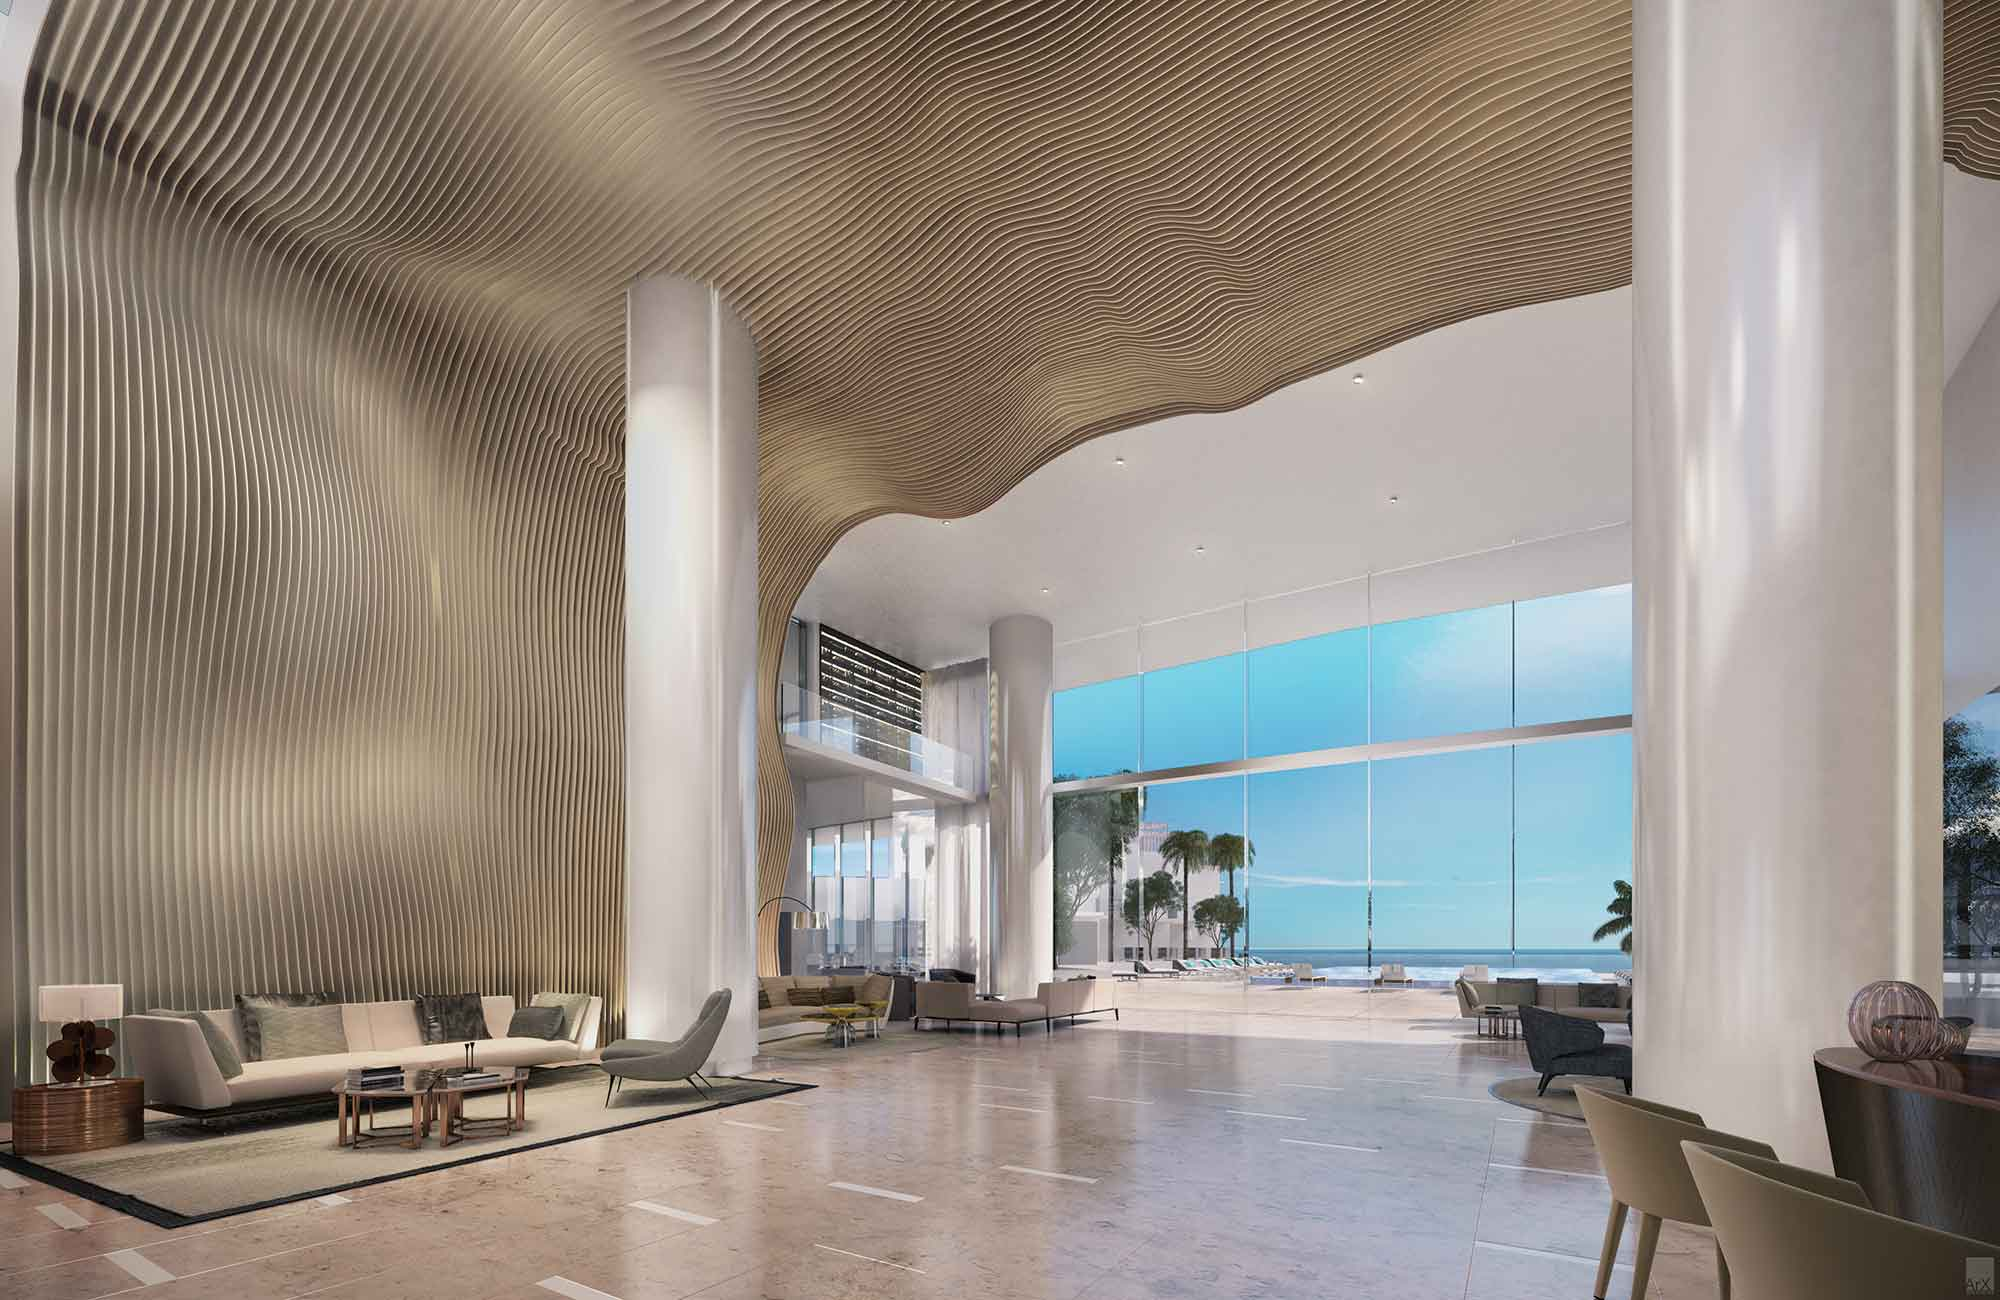 In Miami condos, what do buyers get for their money?